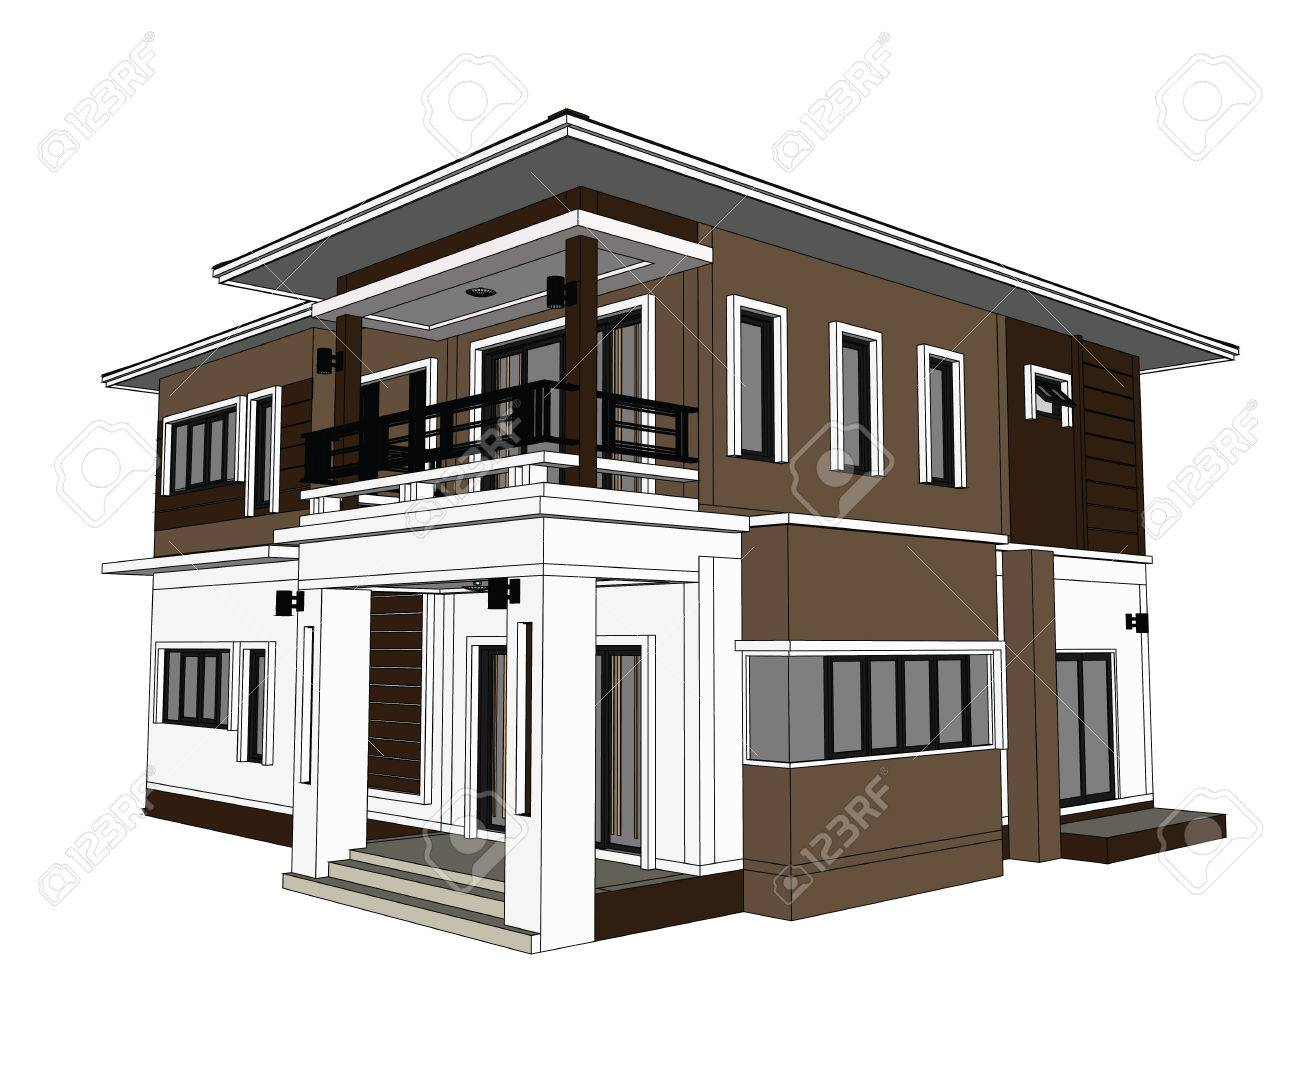 Drawings 3d home design construction stock photo 59252746